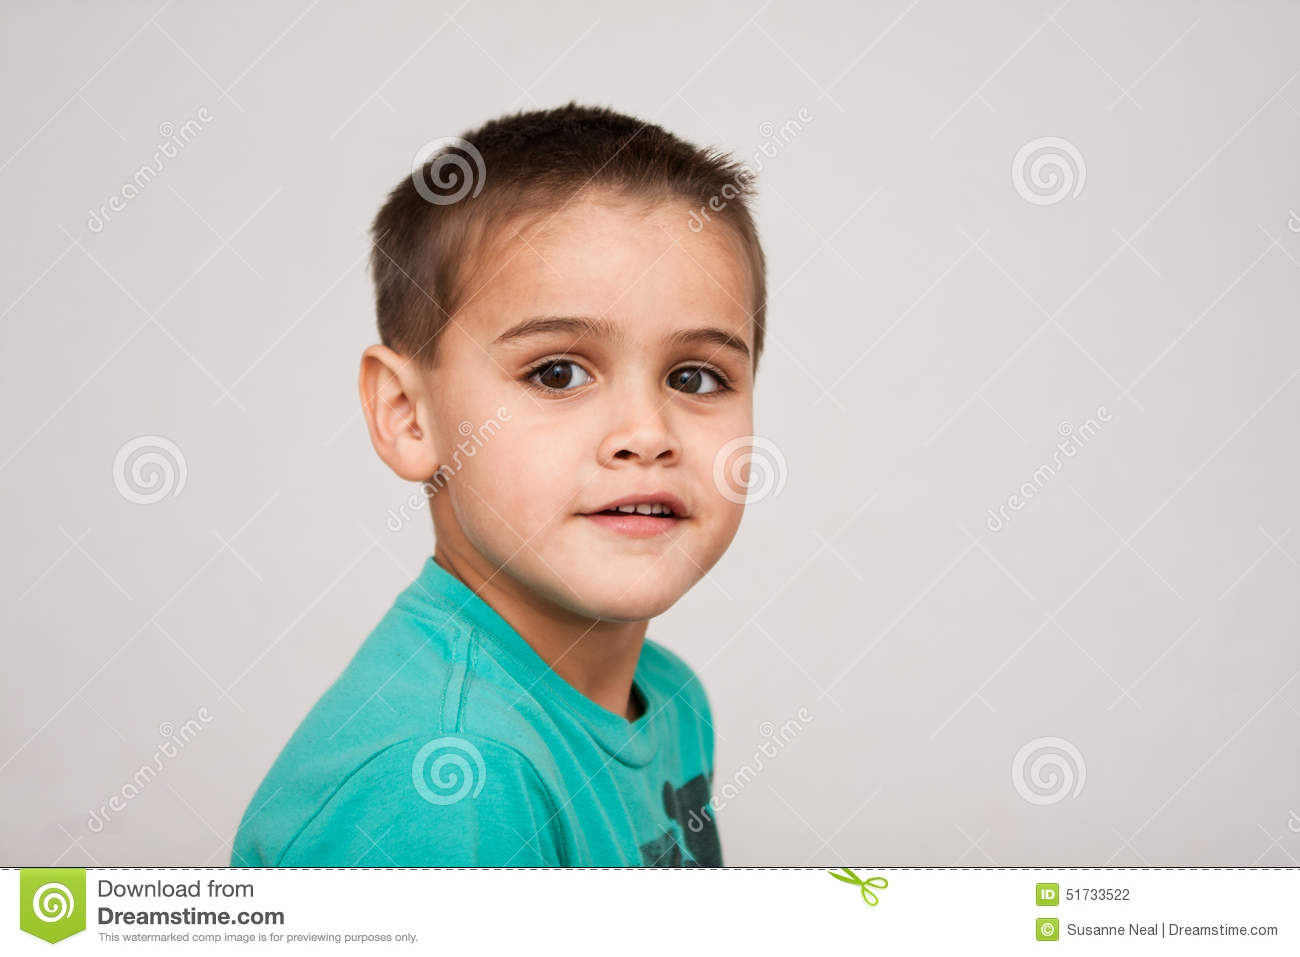 Surprising Portrait Of Cute Four Year Old Boy With Short Haircut Stock Photo Short Hairstyles For Black Women Fulllsitofus